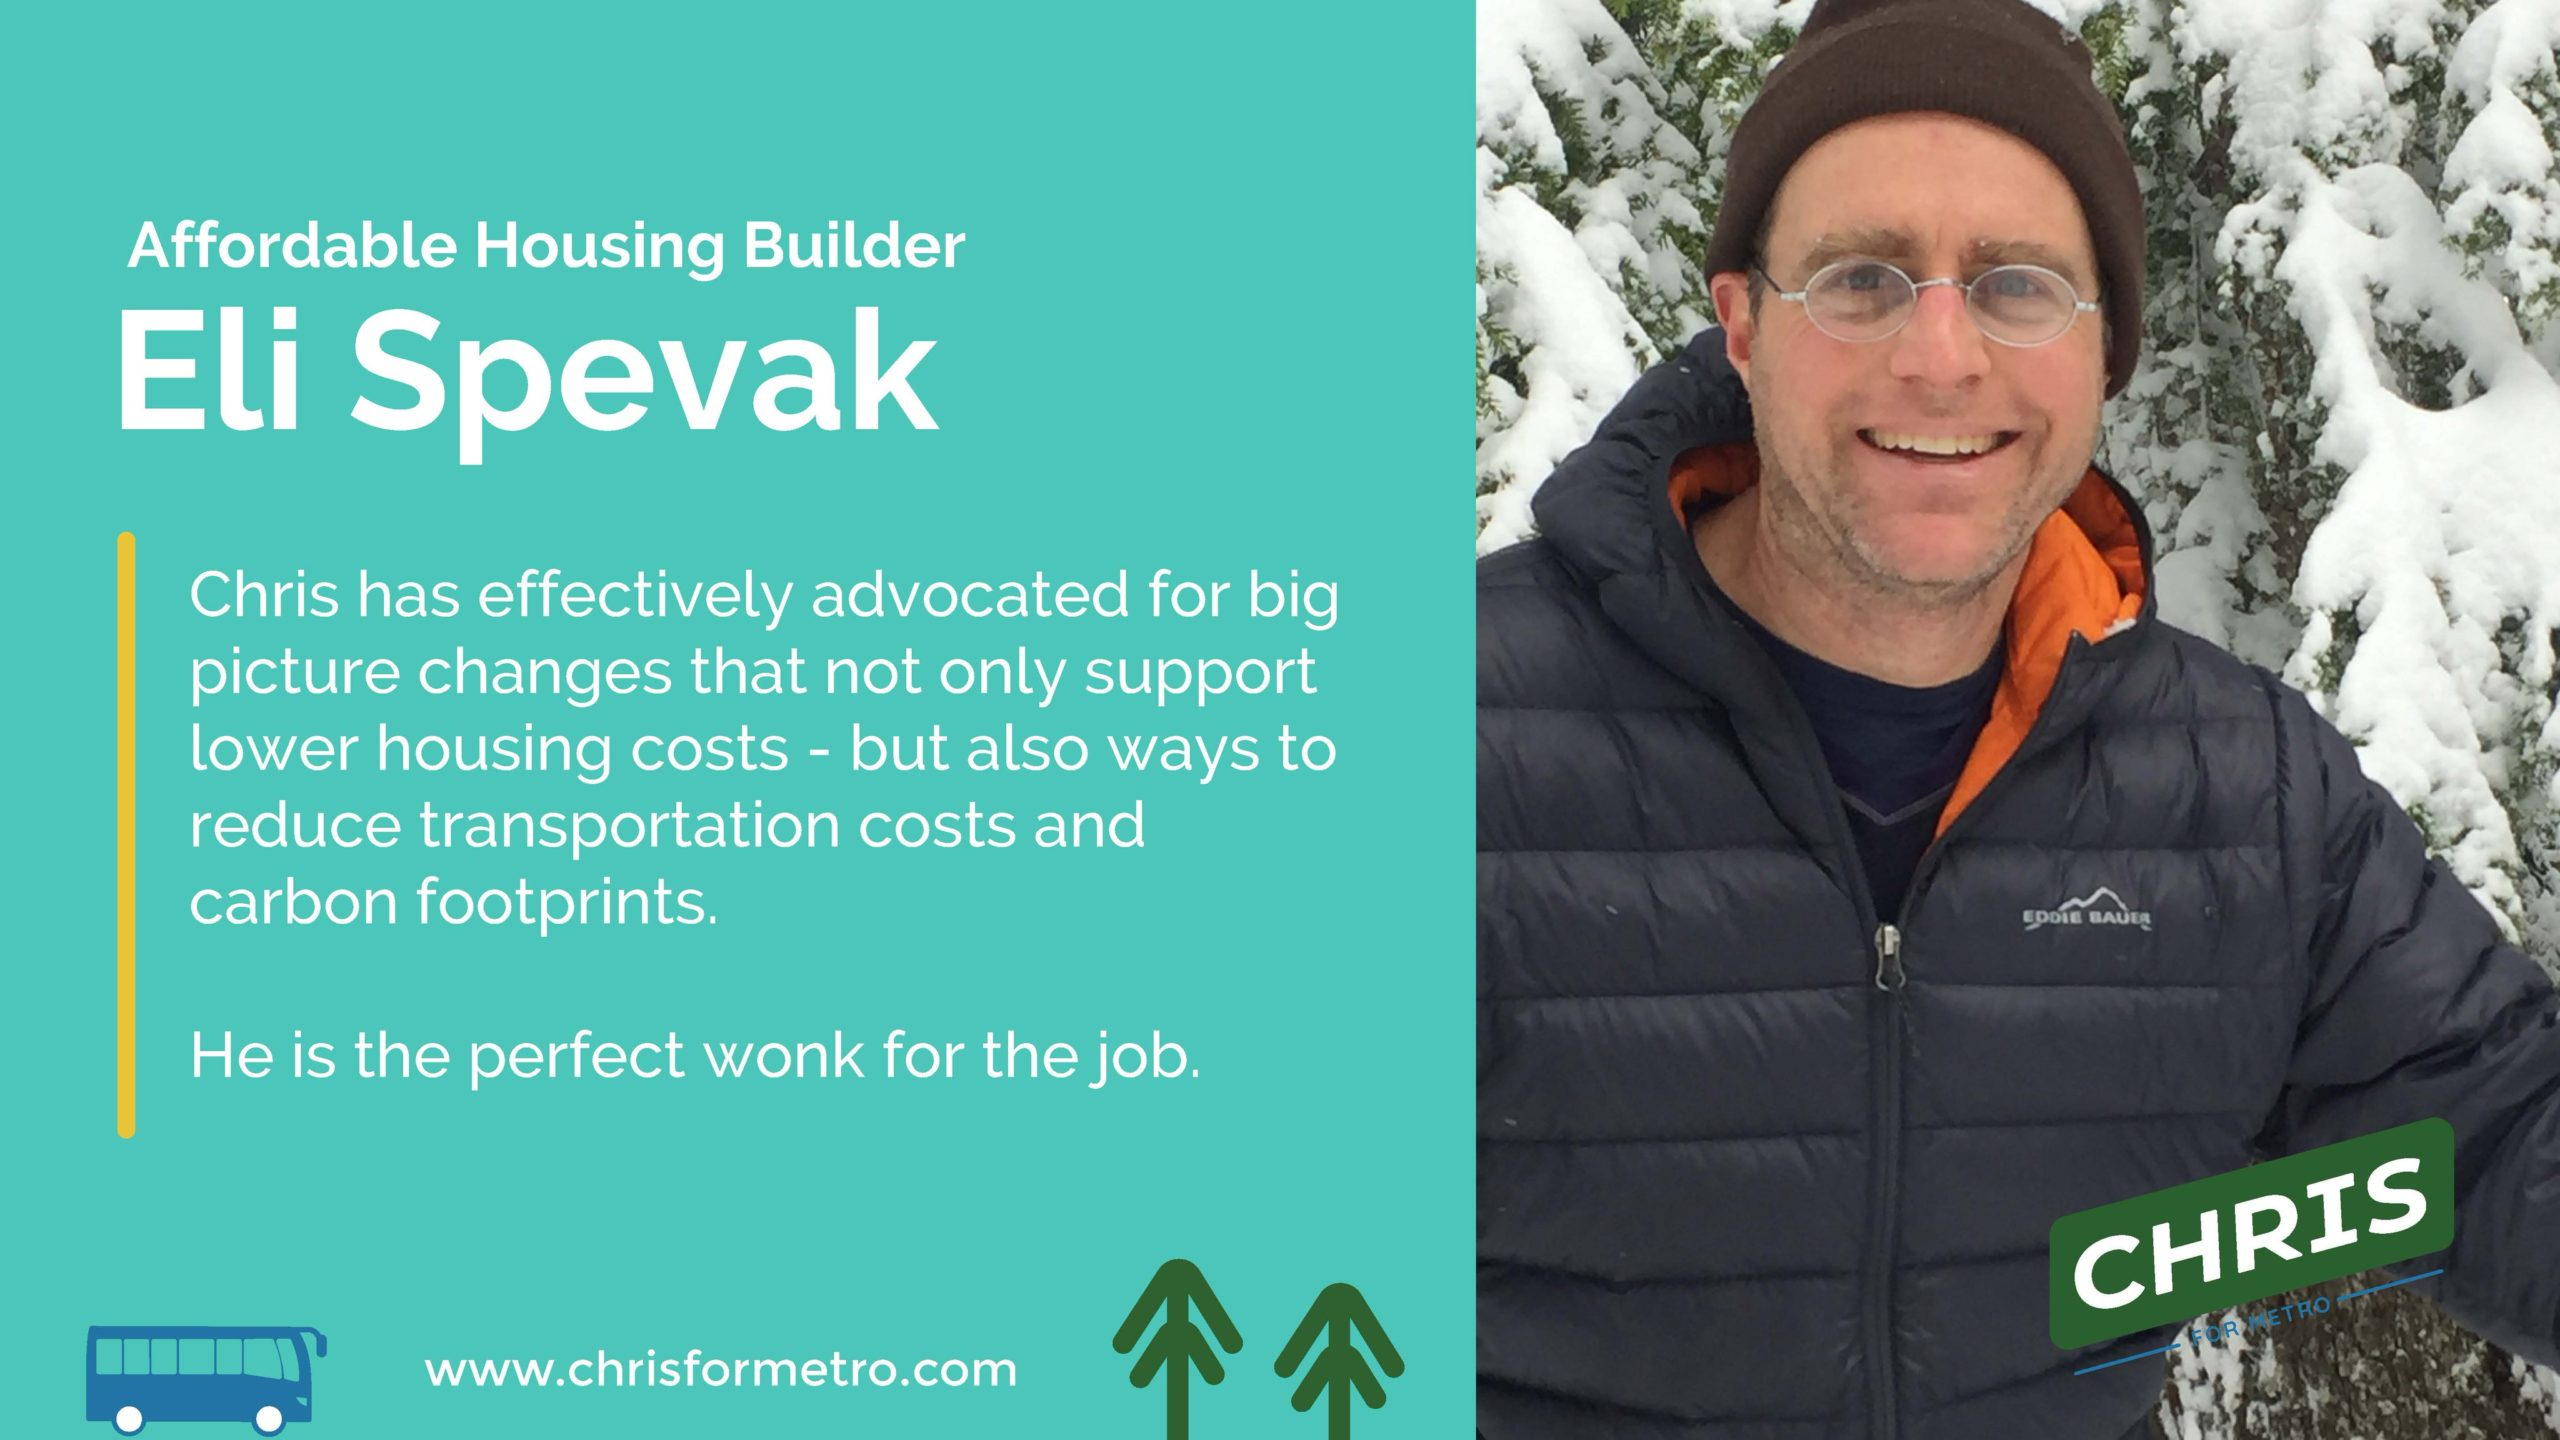 Eli Spevak Endorsement